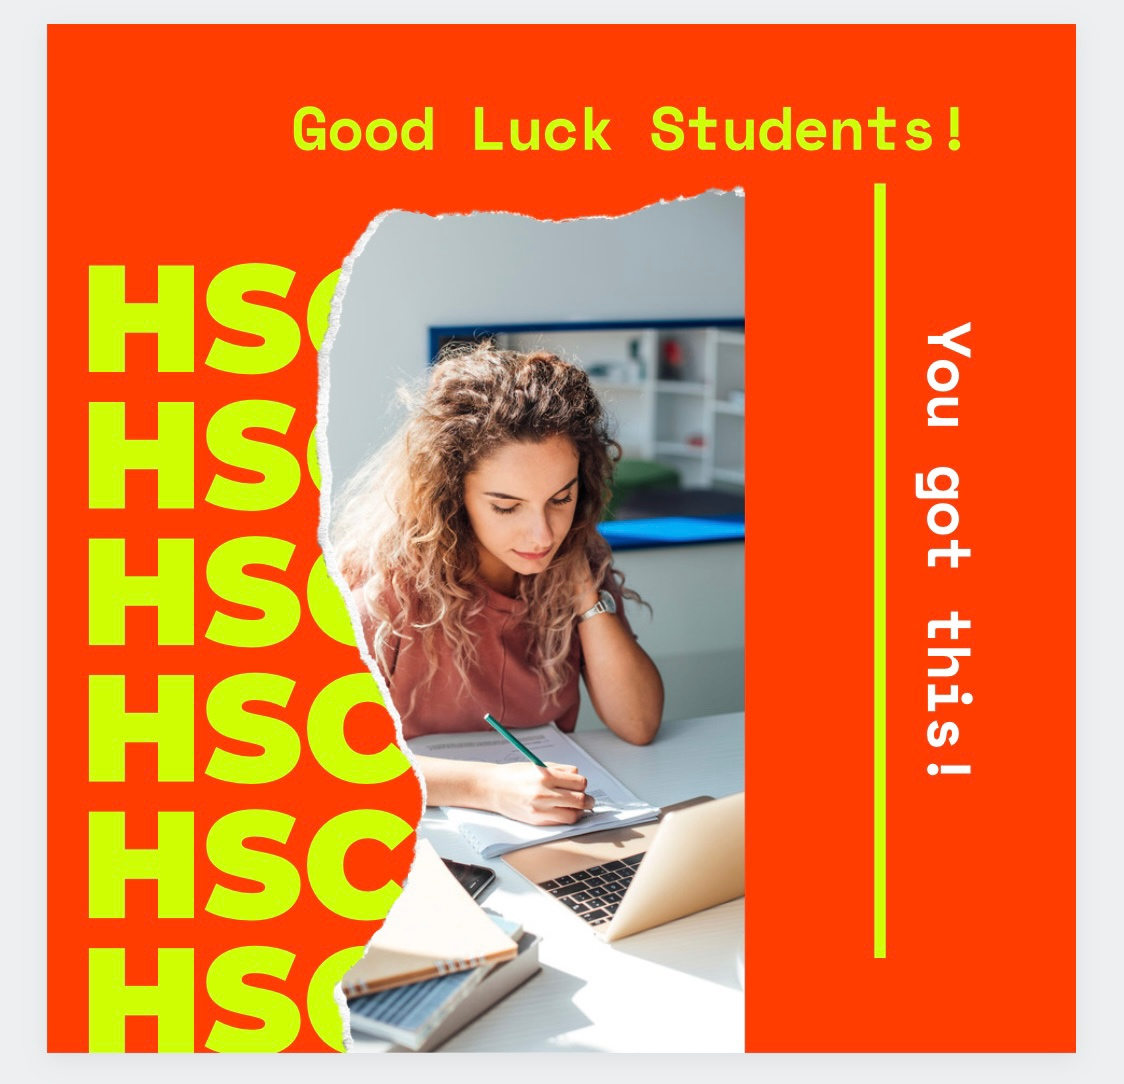 Good luck to all our HSC Students who have worked tirelessly for these exams. To my performing and music students - let your soul do all the work, go get em! #voice #hsc #exams #highschool https://t.co/DnM4qoCMo1